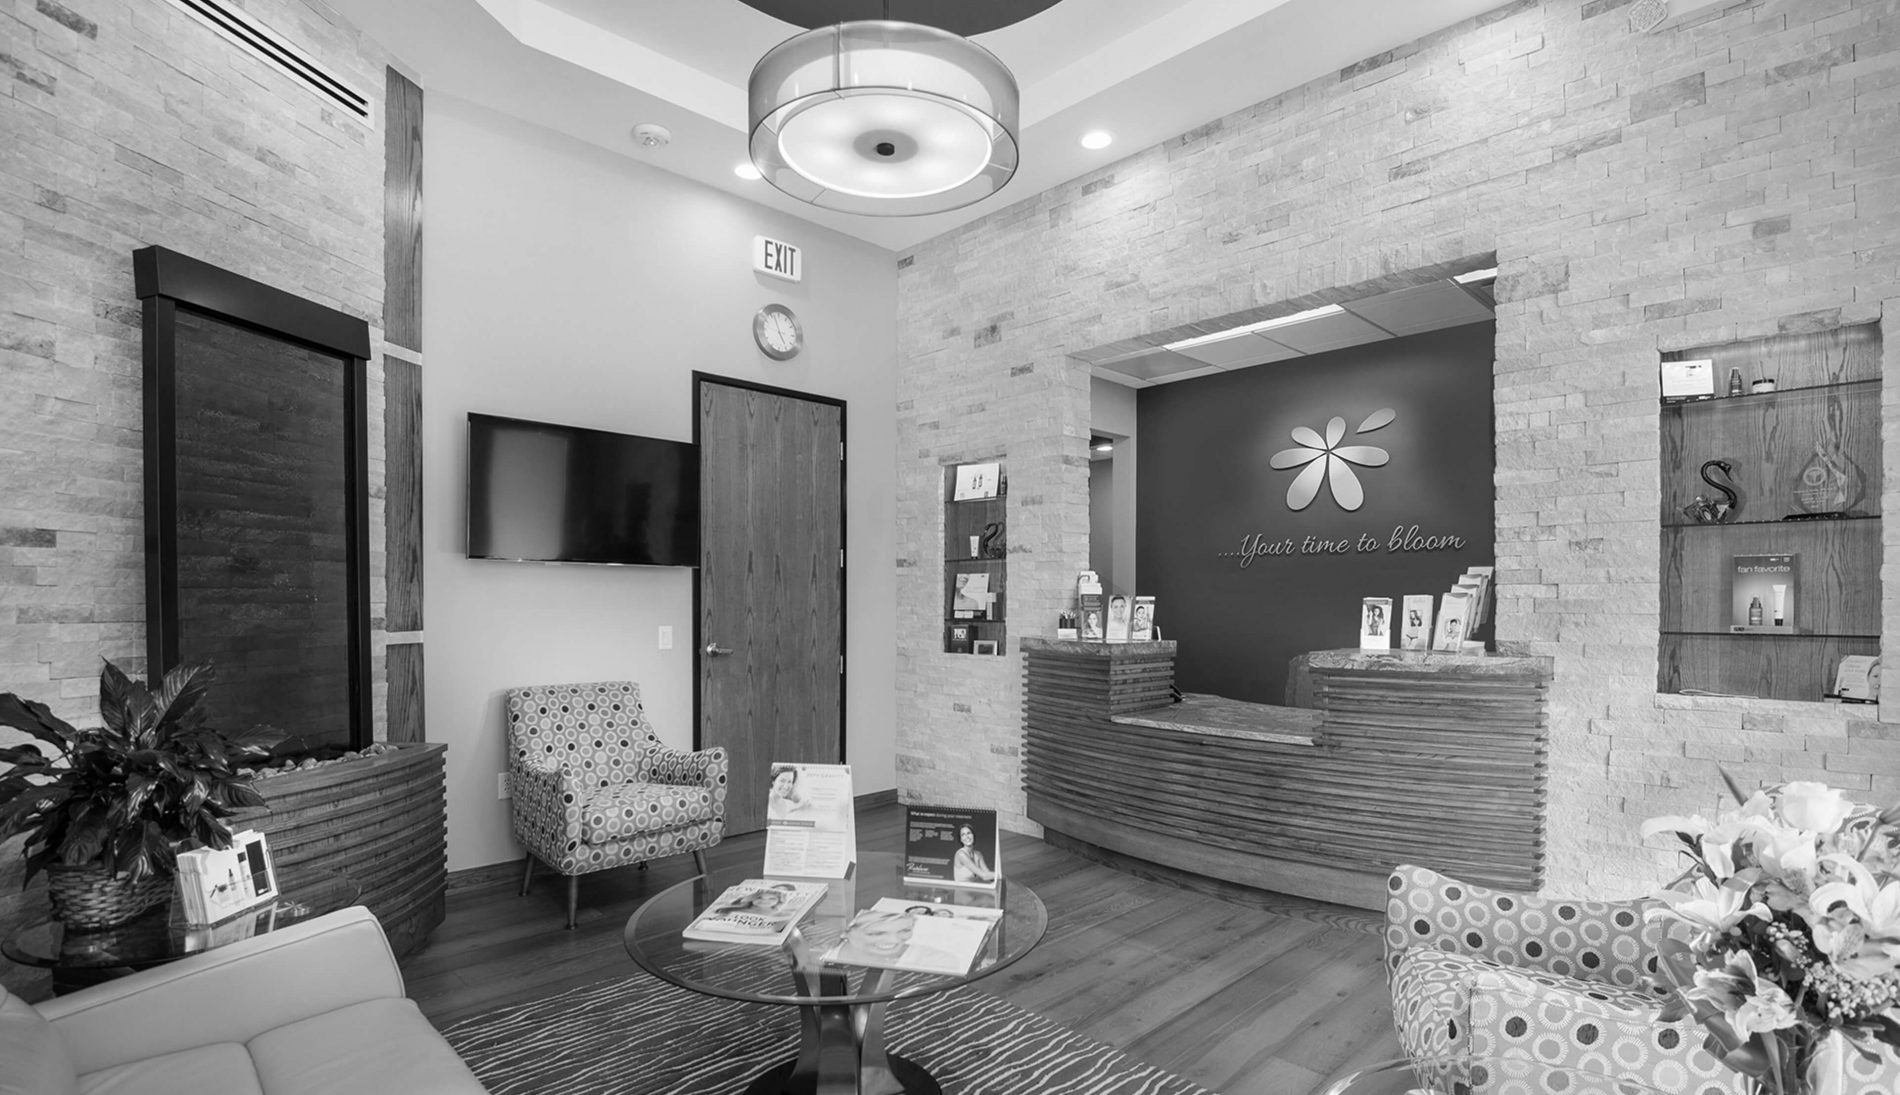 Aspira Plastic Surgery & MedSpa office